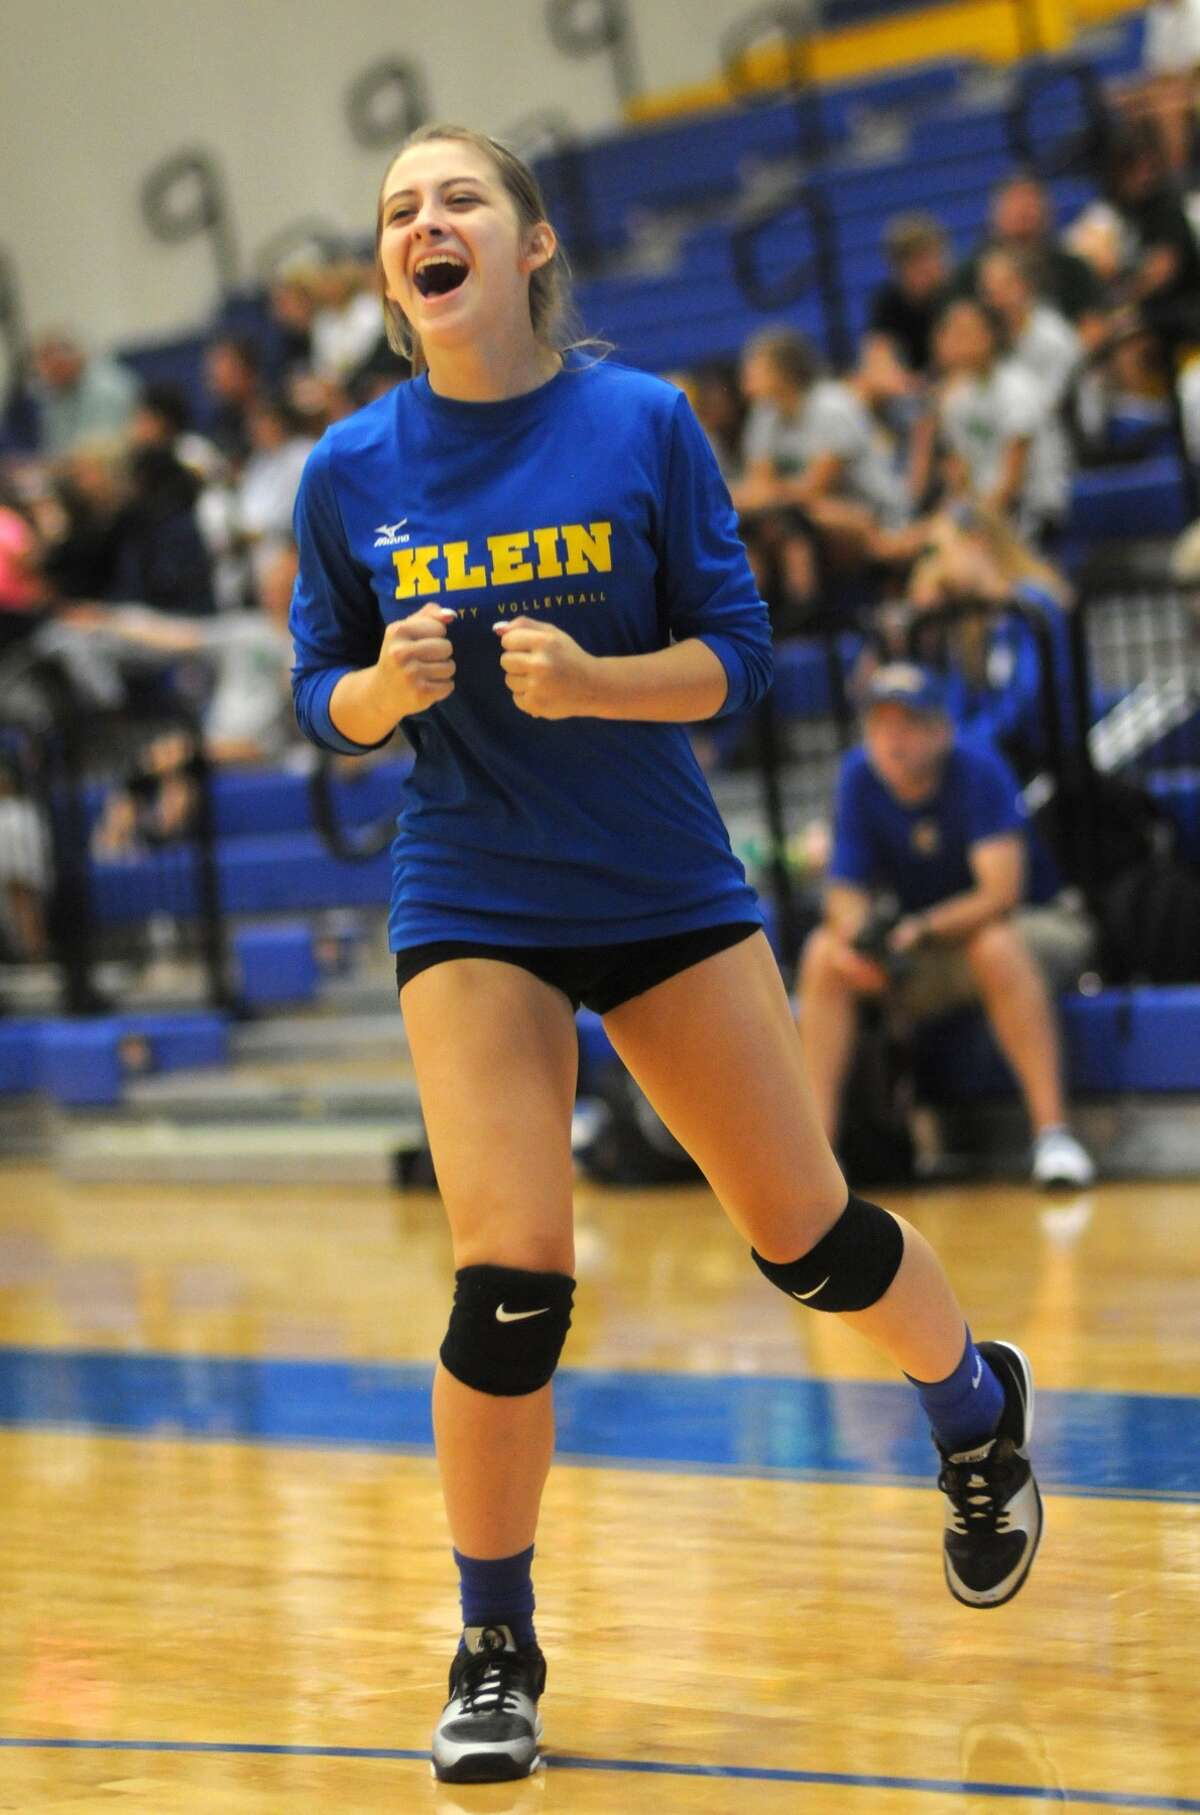 The play of Klein sophomore defensive specialist Madison Prosise is one of the reasons the future looks bright for the Bearkats.